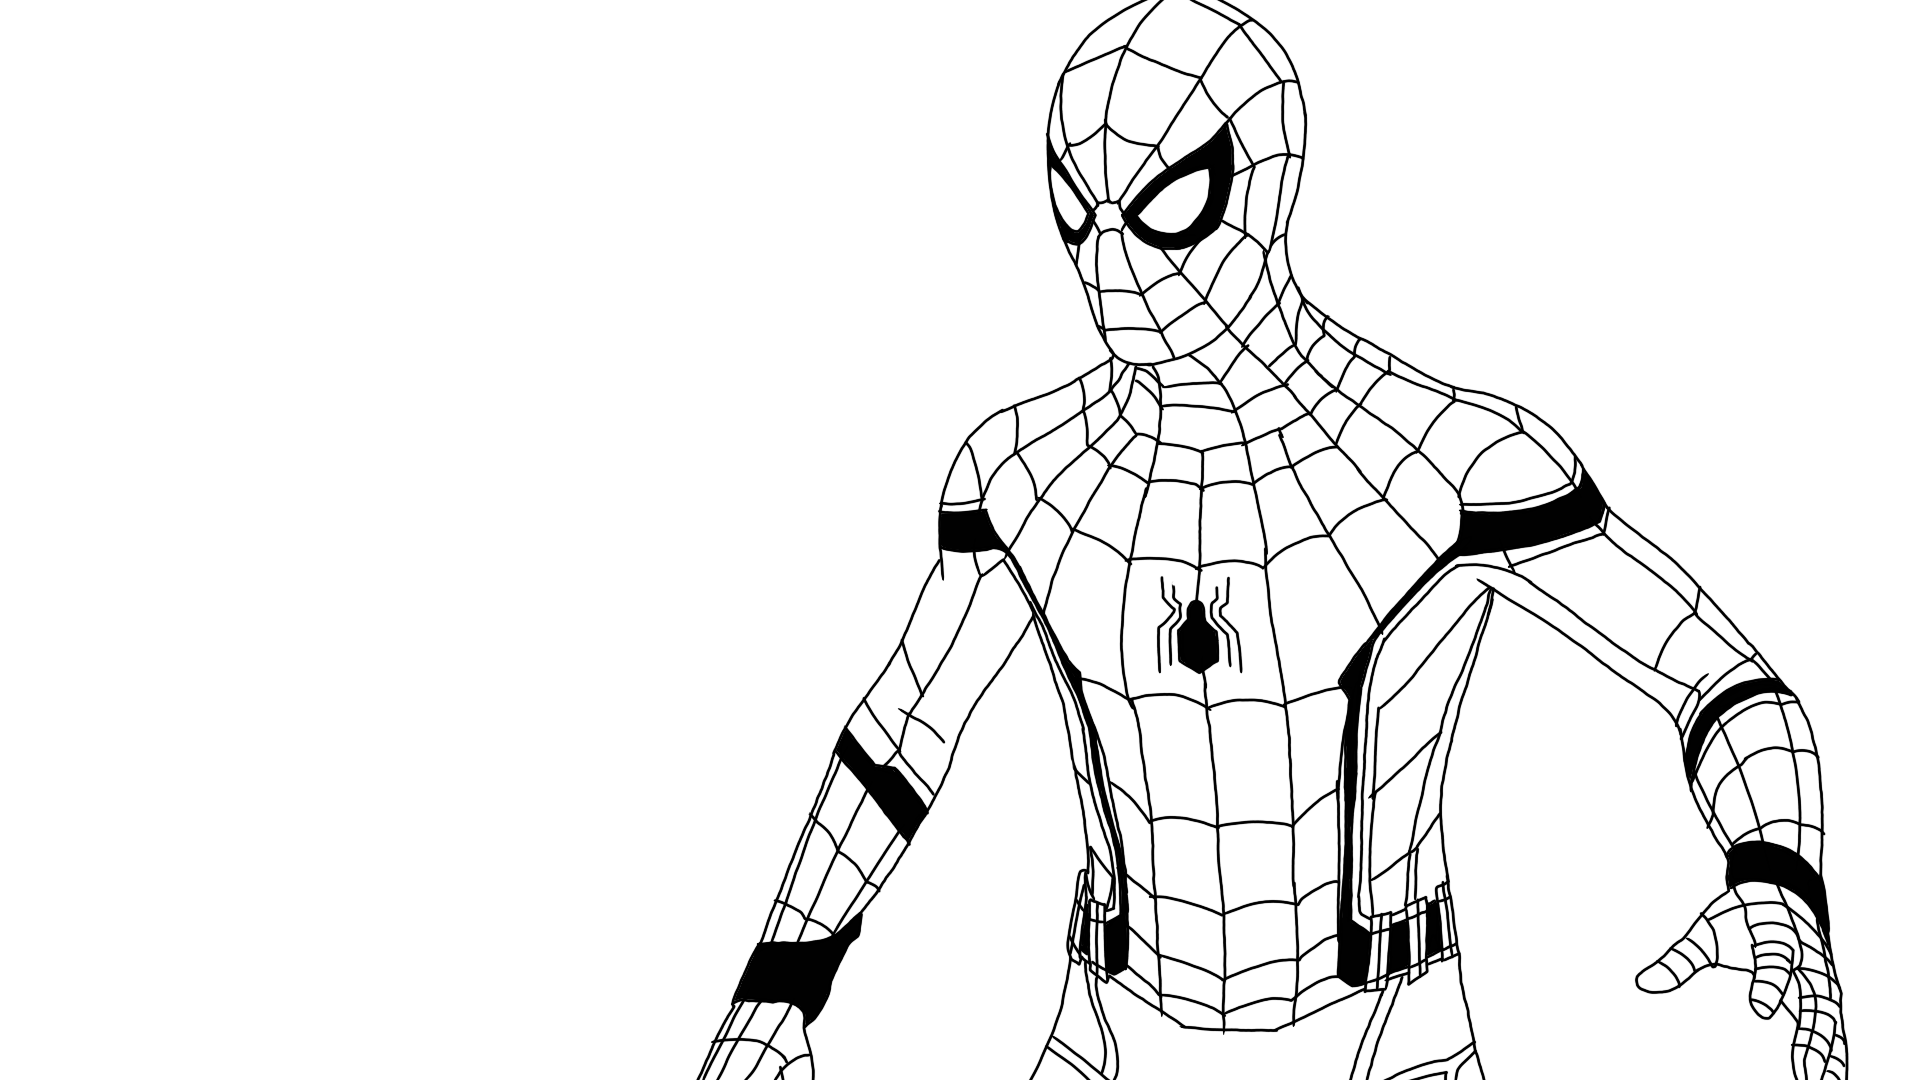 coloring spider man far from home spider man far from home drawing sketch from far spider coloring man home